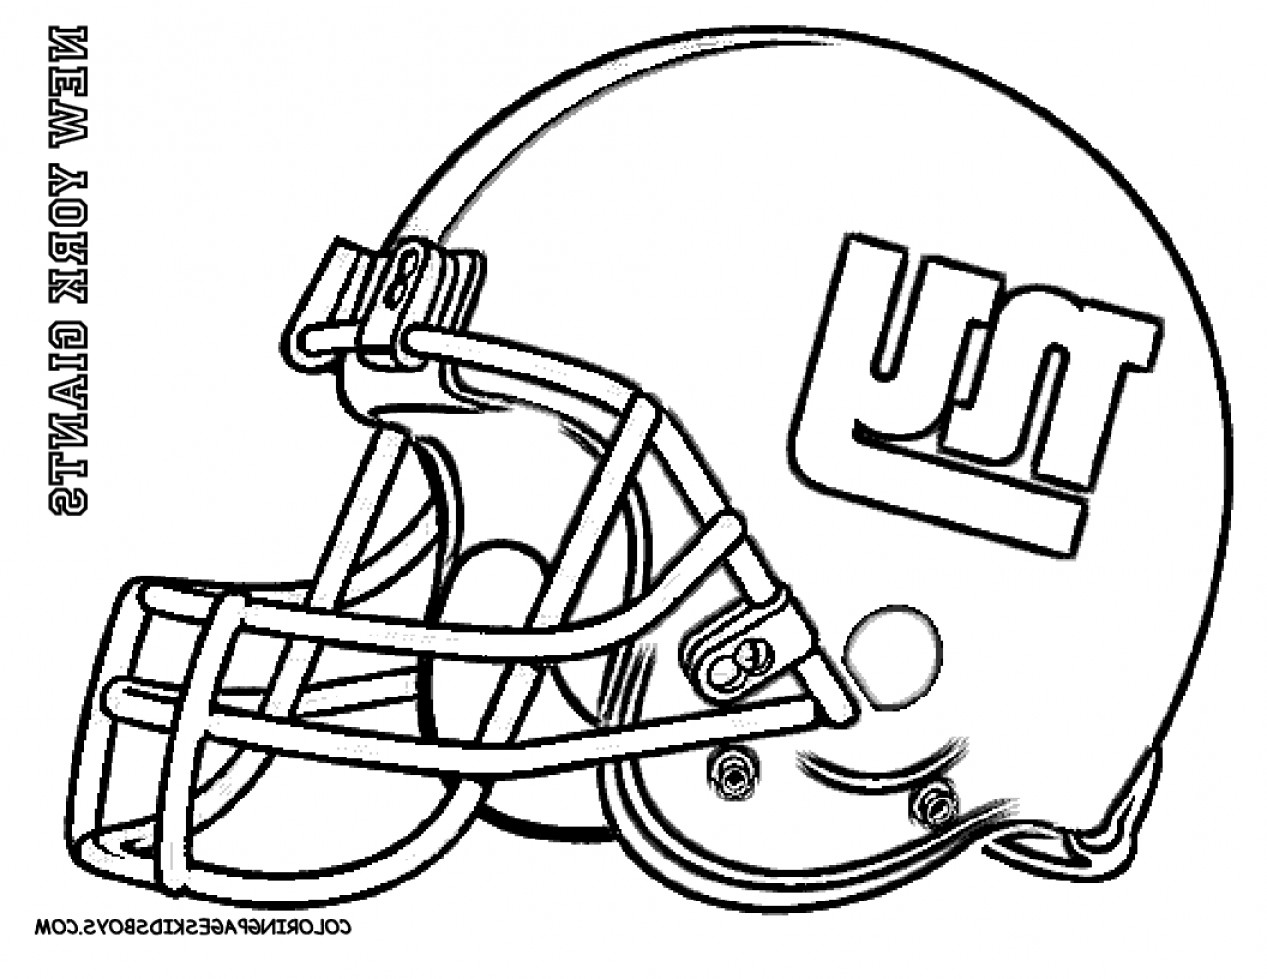 Seahawks Helmet Vector: How To Draw A Nfl Helmet